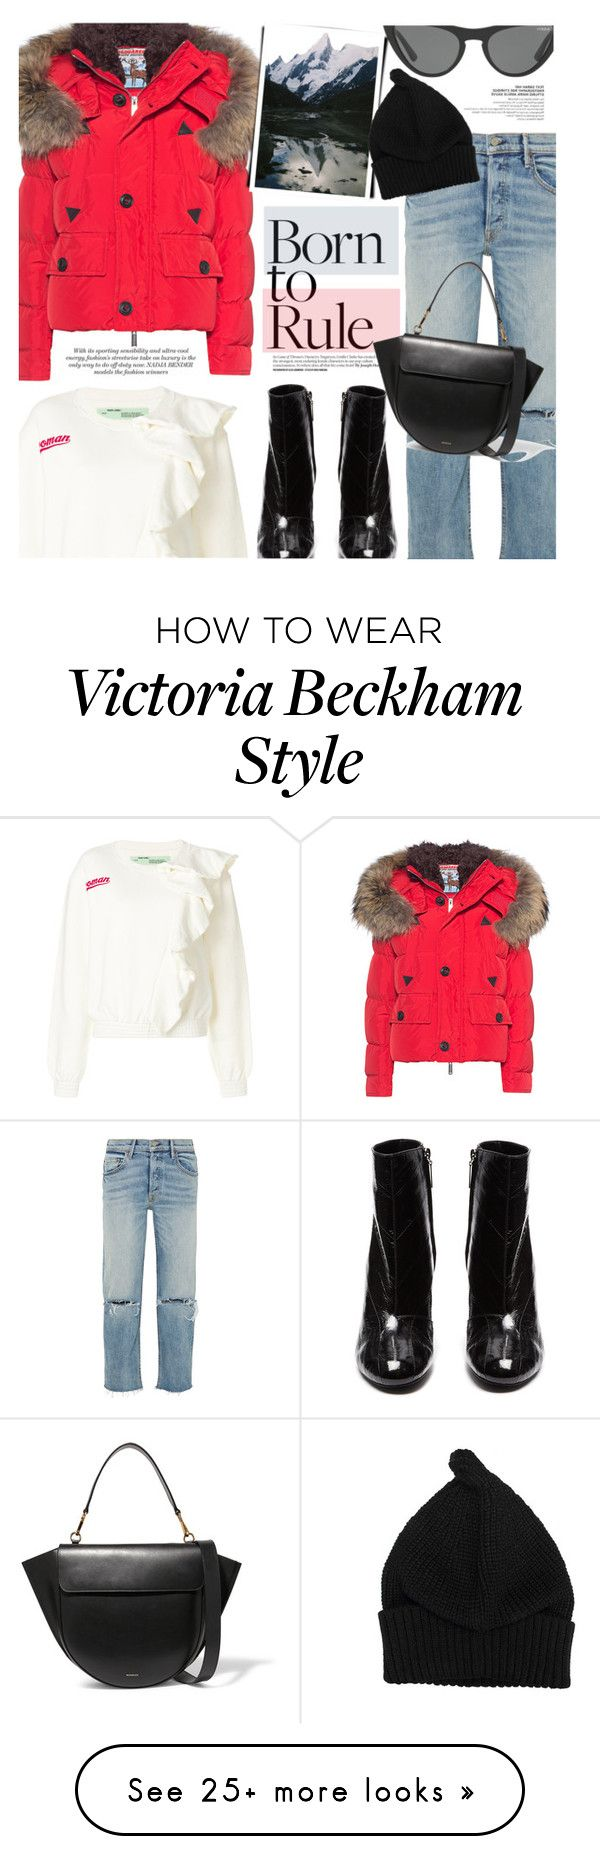 """""""Winter Style"""" by chocolate-addicted-angel on Polyvore featuring Dsquared2, GRLFRND, Yves Saint Laurent, Off-White, Victoria, Victoria Beckham, Wandler, winterfashion, 2017 and puffercoats"""